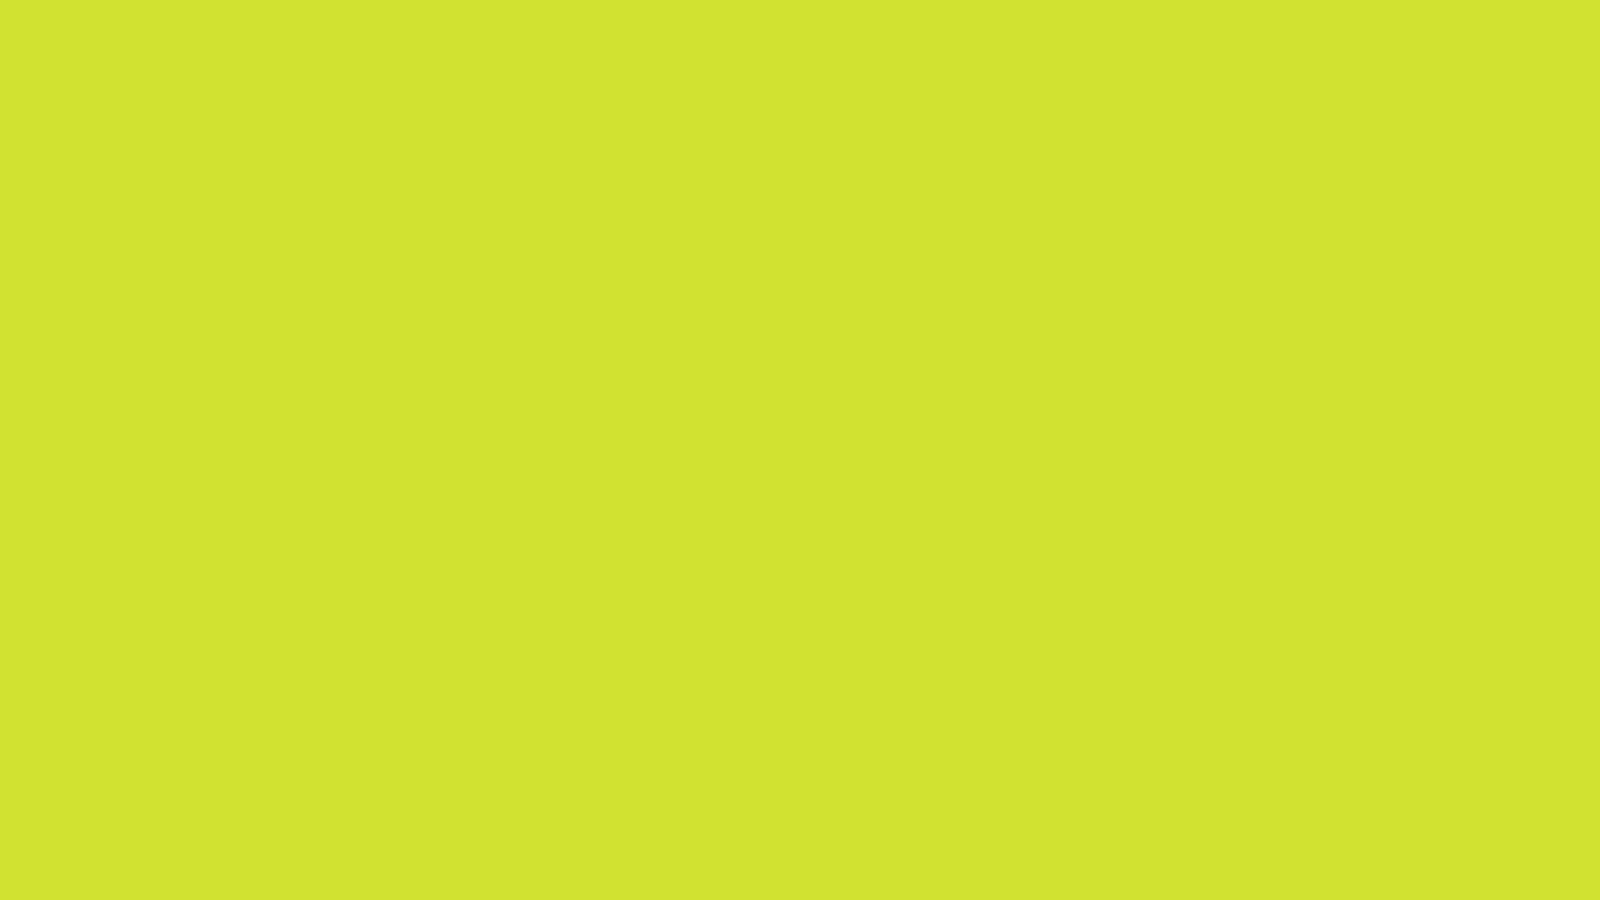 1600x900 Pear Solid Color Background